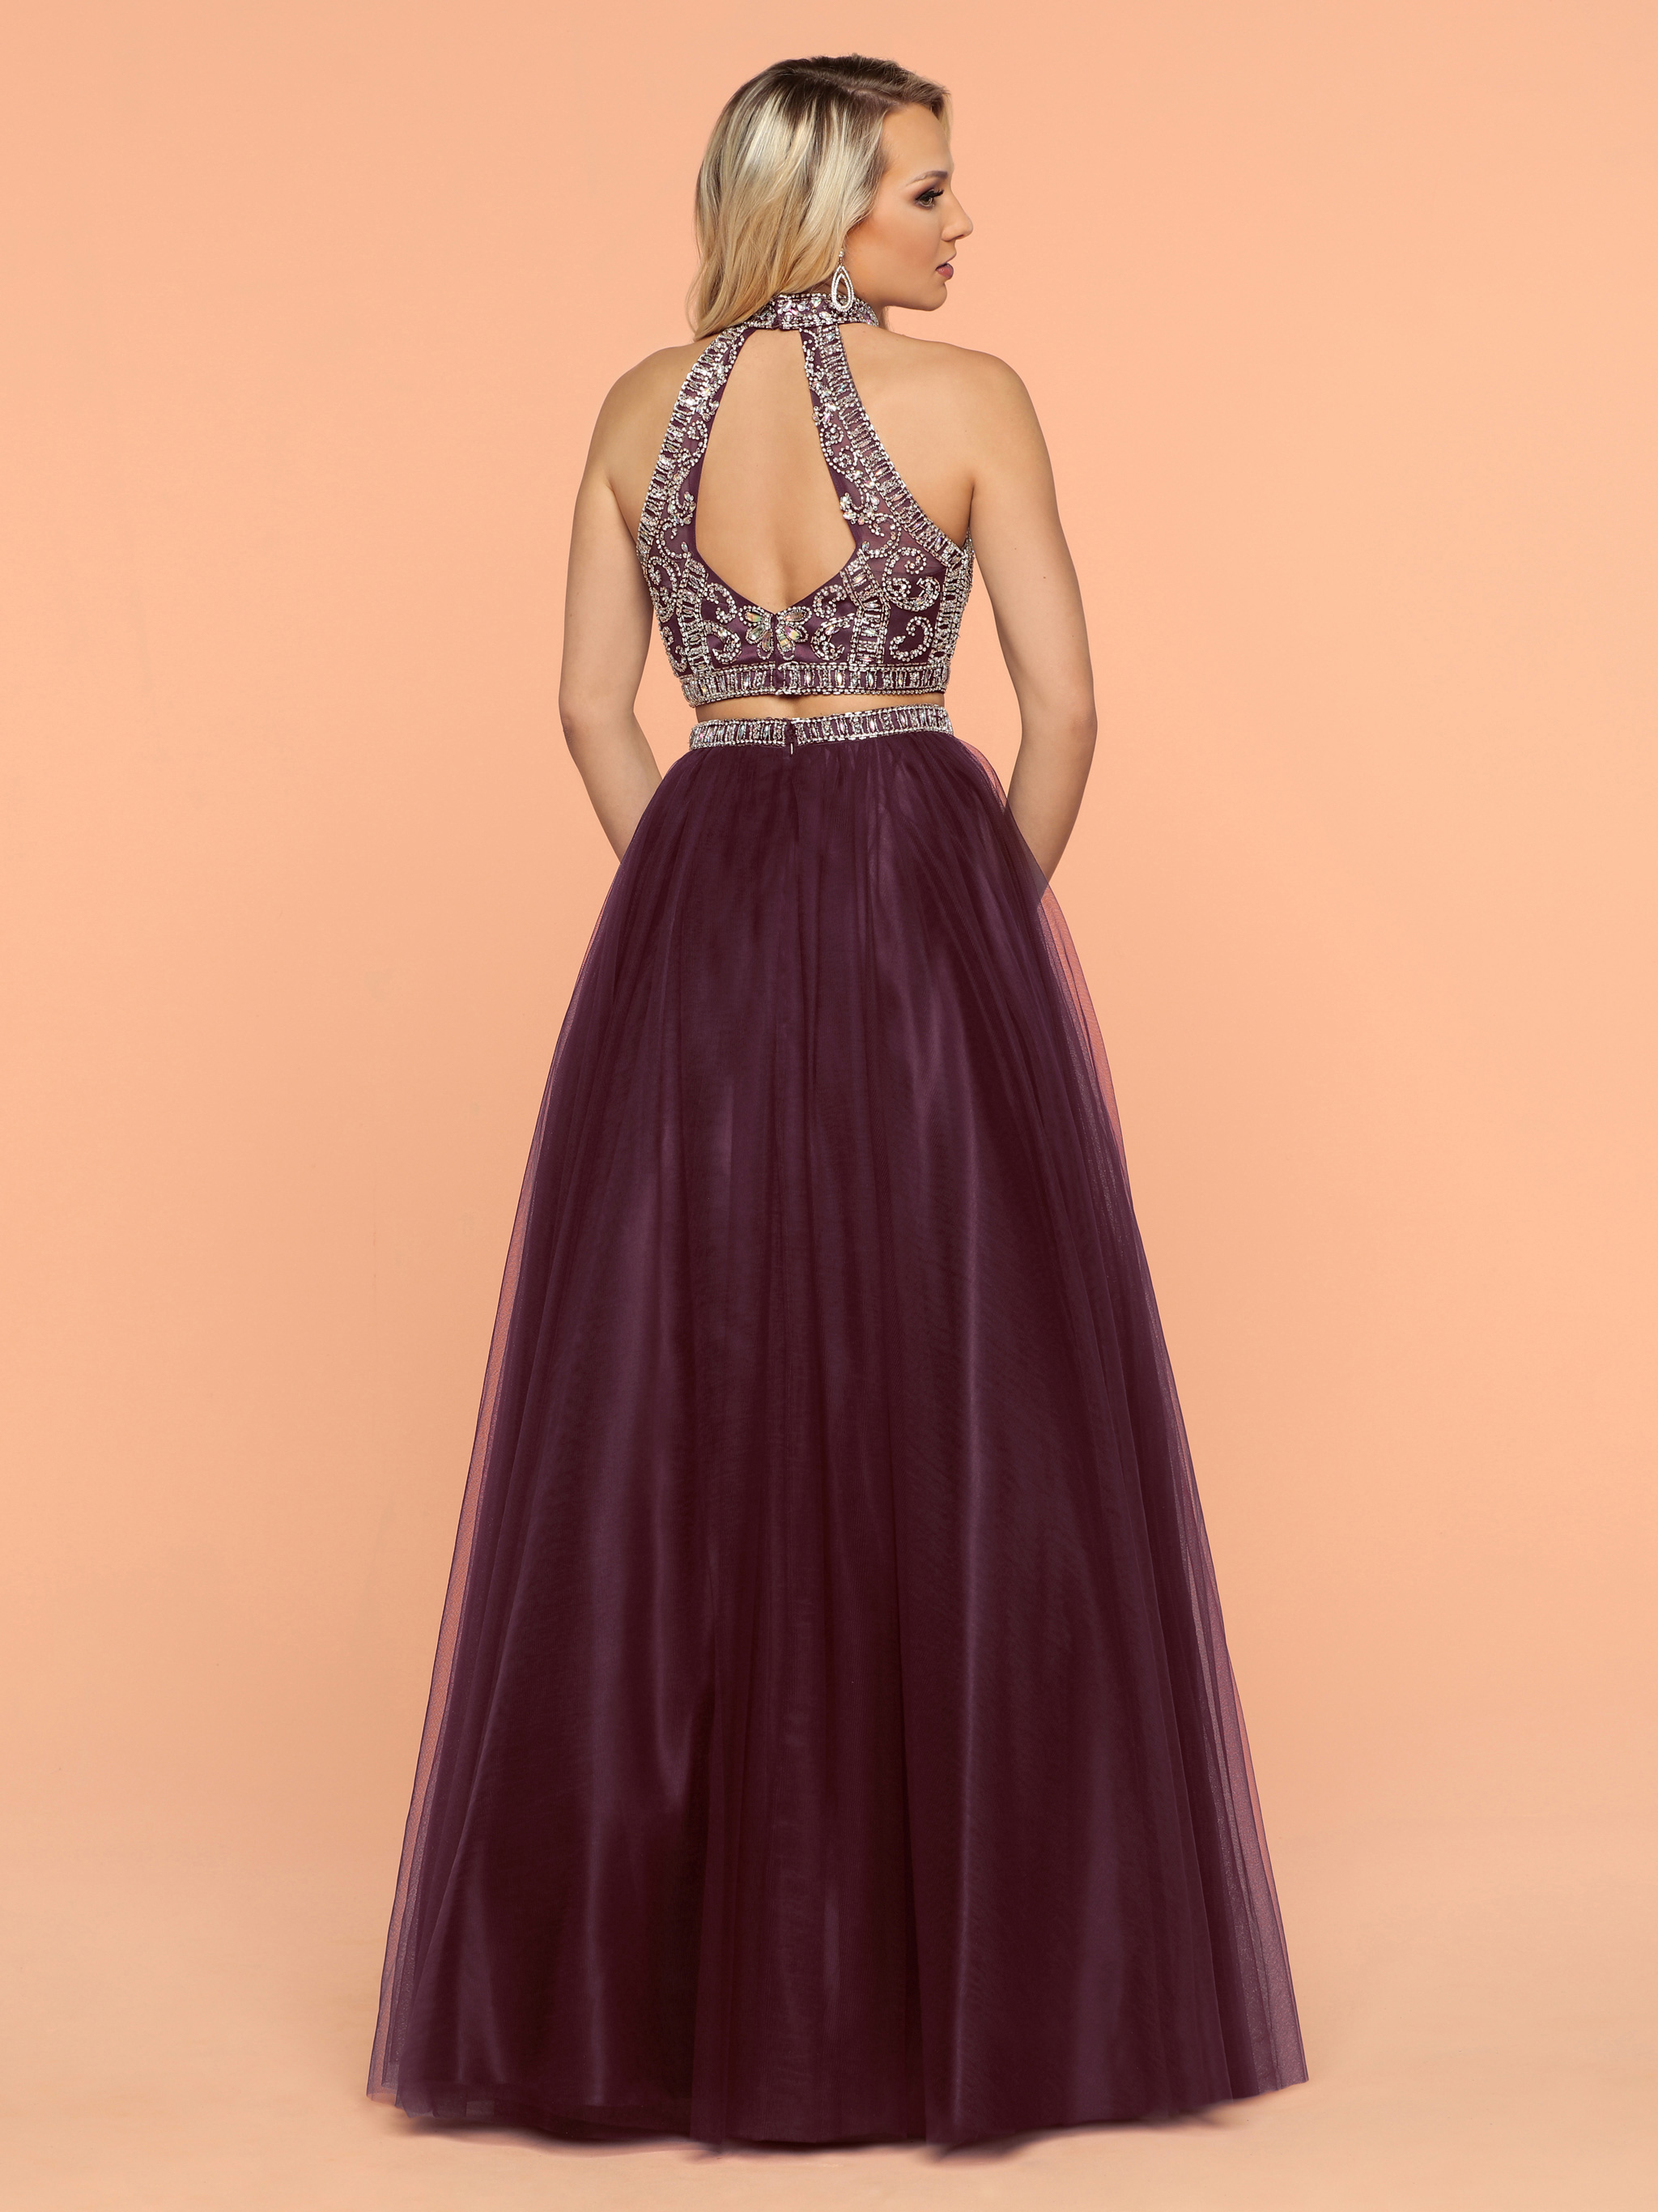 Image showing back view of style #71811